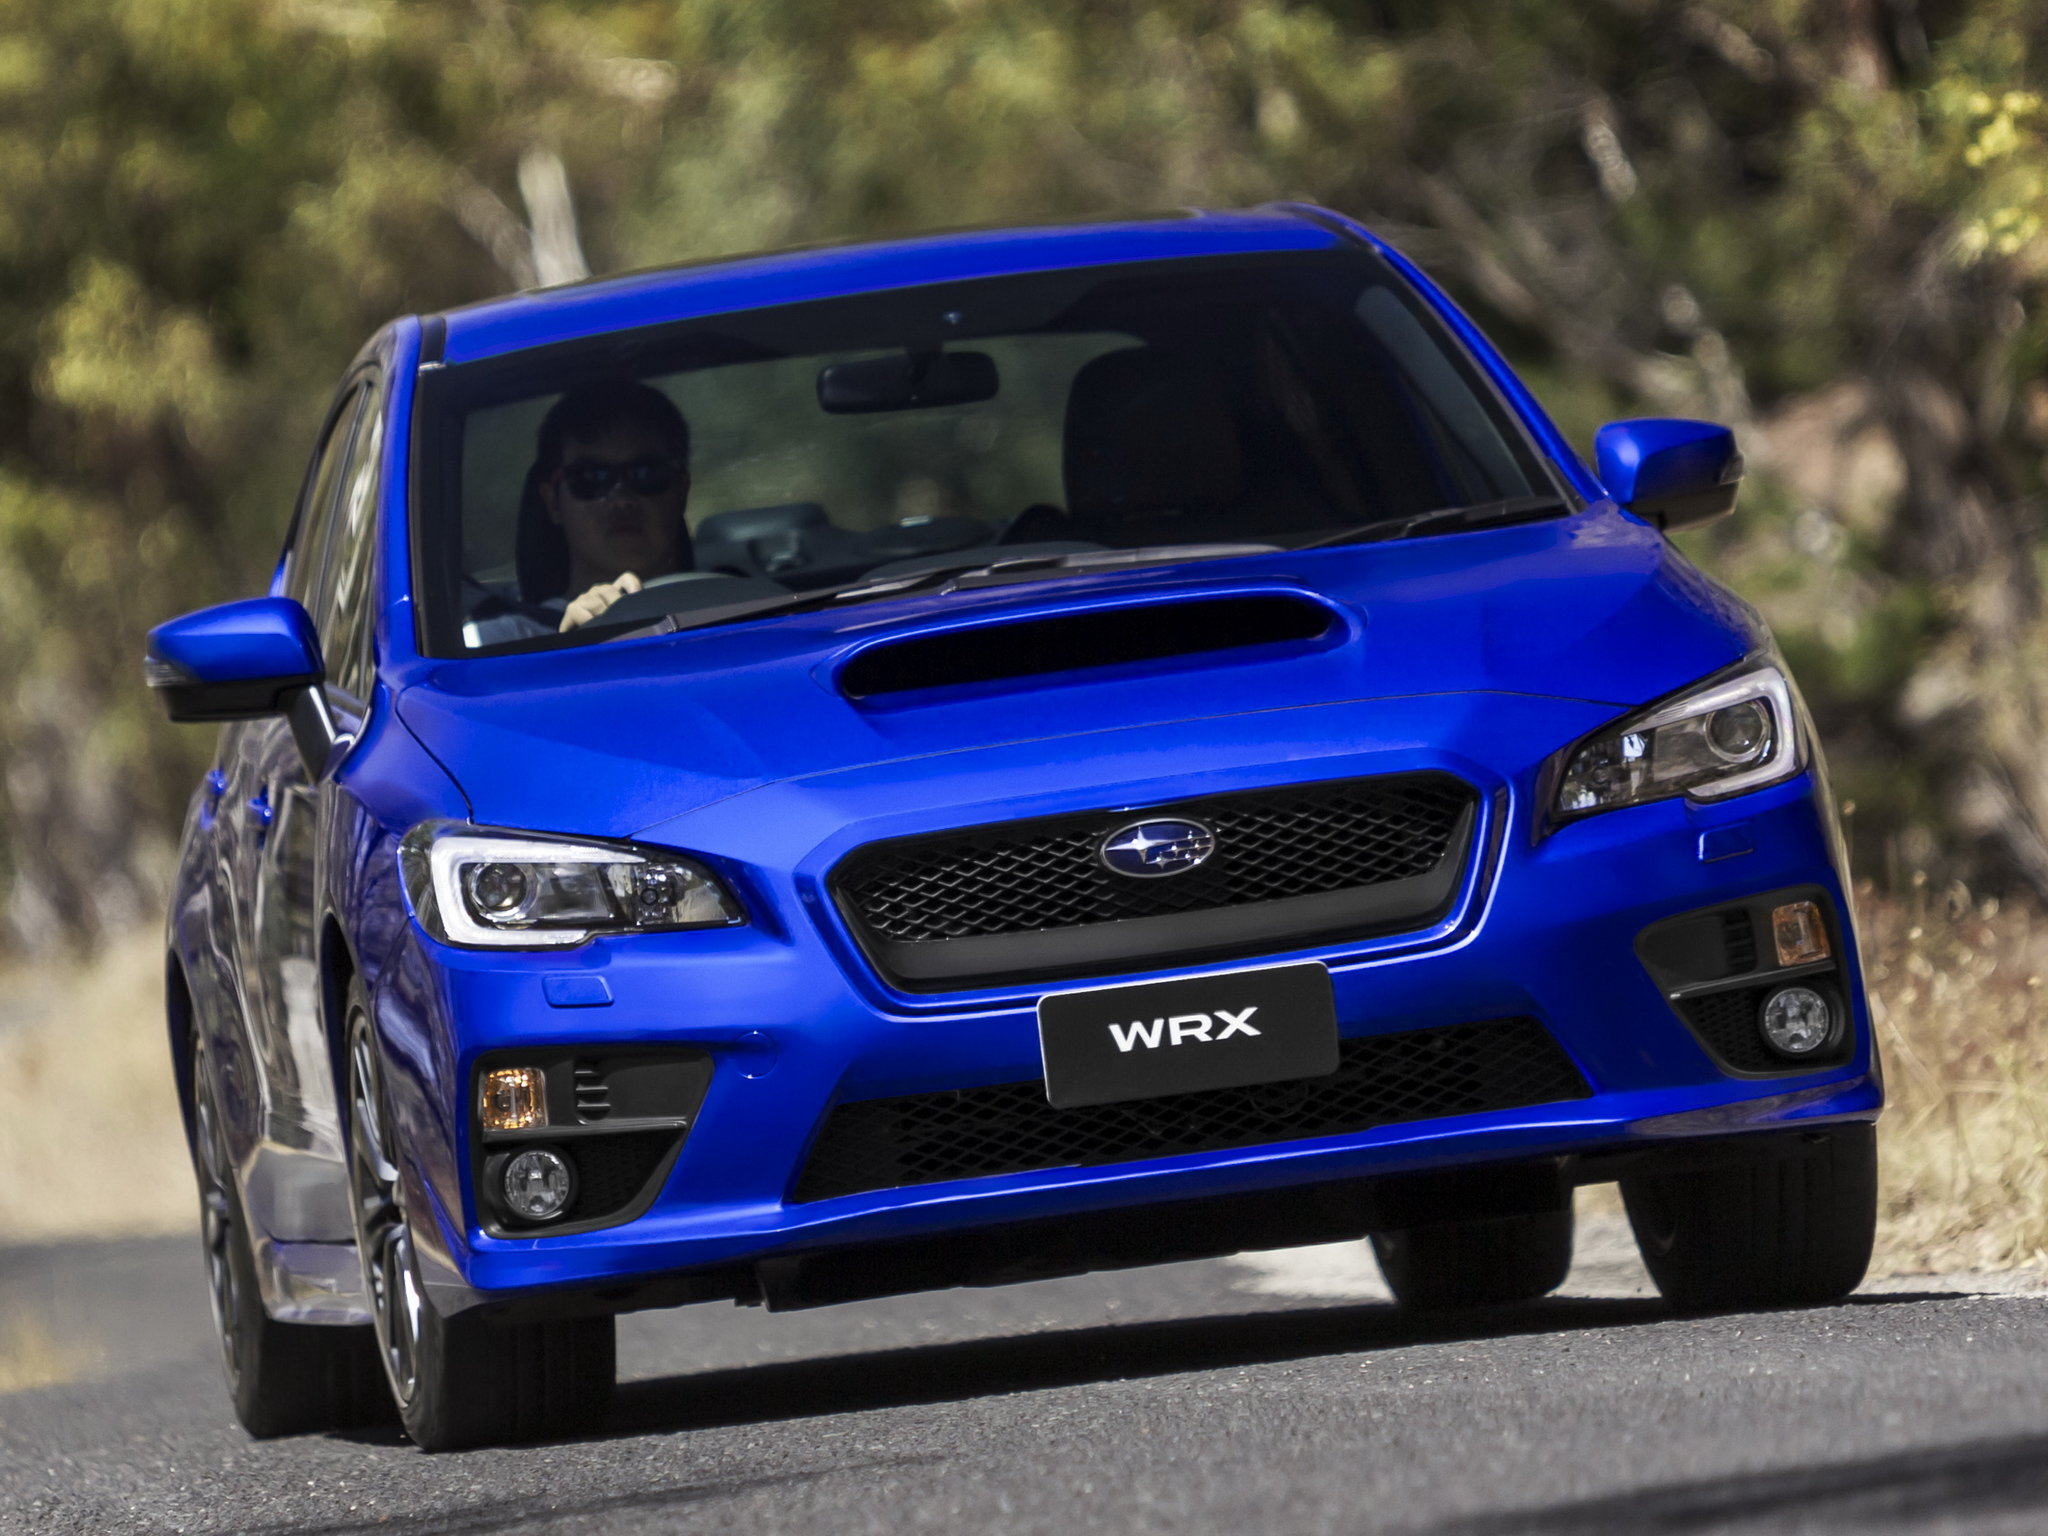 Sti For Sale >> 2015 Subaru WRX Sells Almost as Well as the Forester – Australia - autoevolution